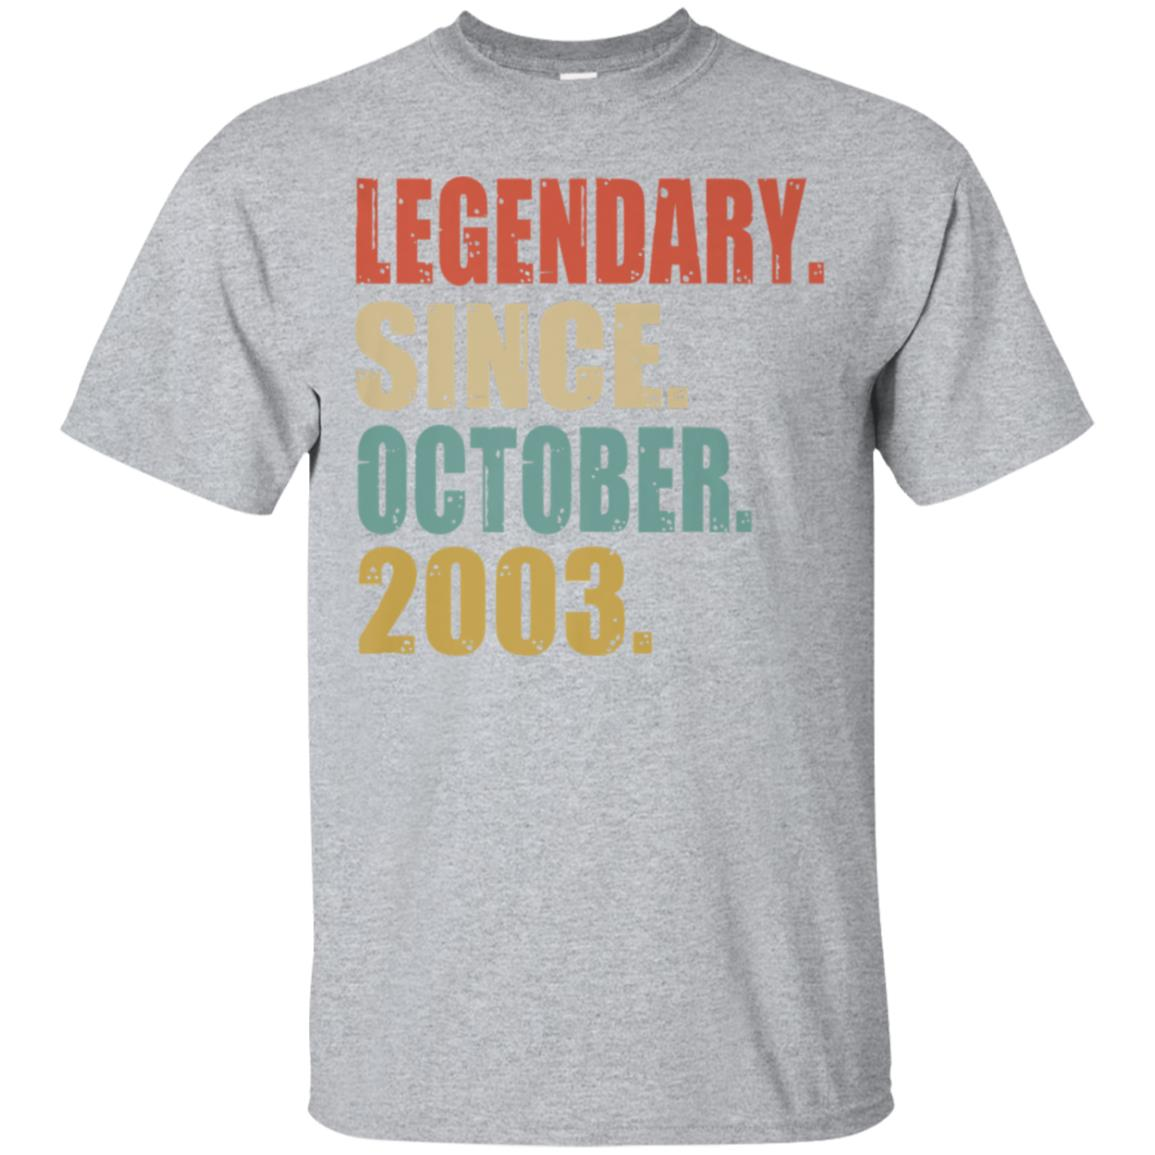 15th Birthday Gifts Retro Legendary Since October 2003 Shirt 99promocode